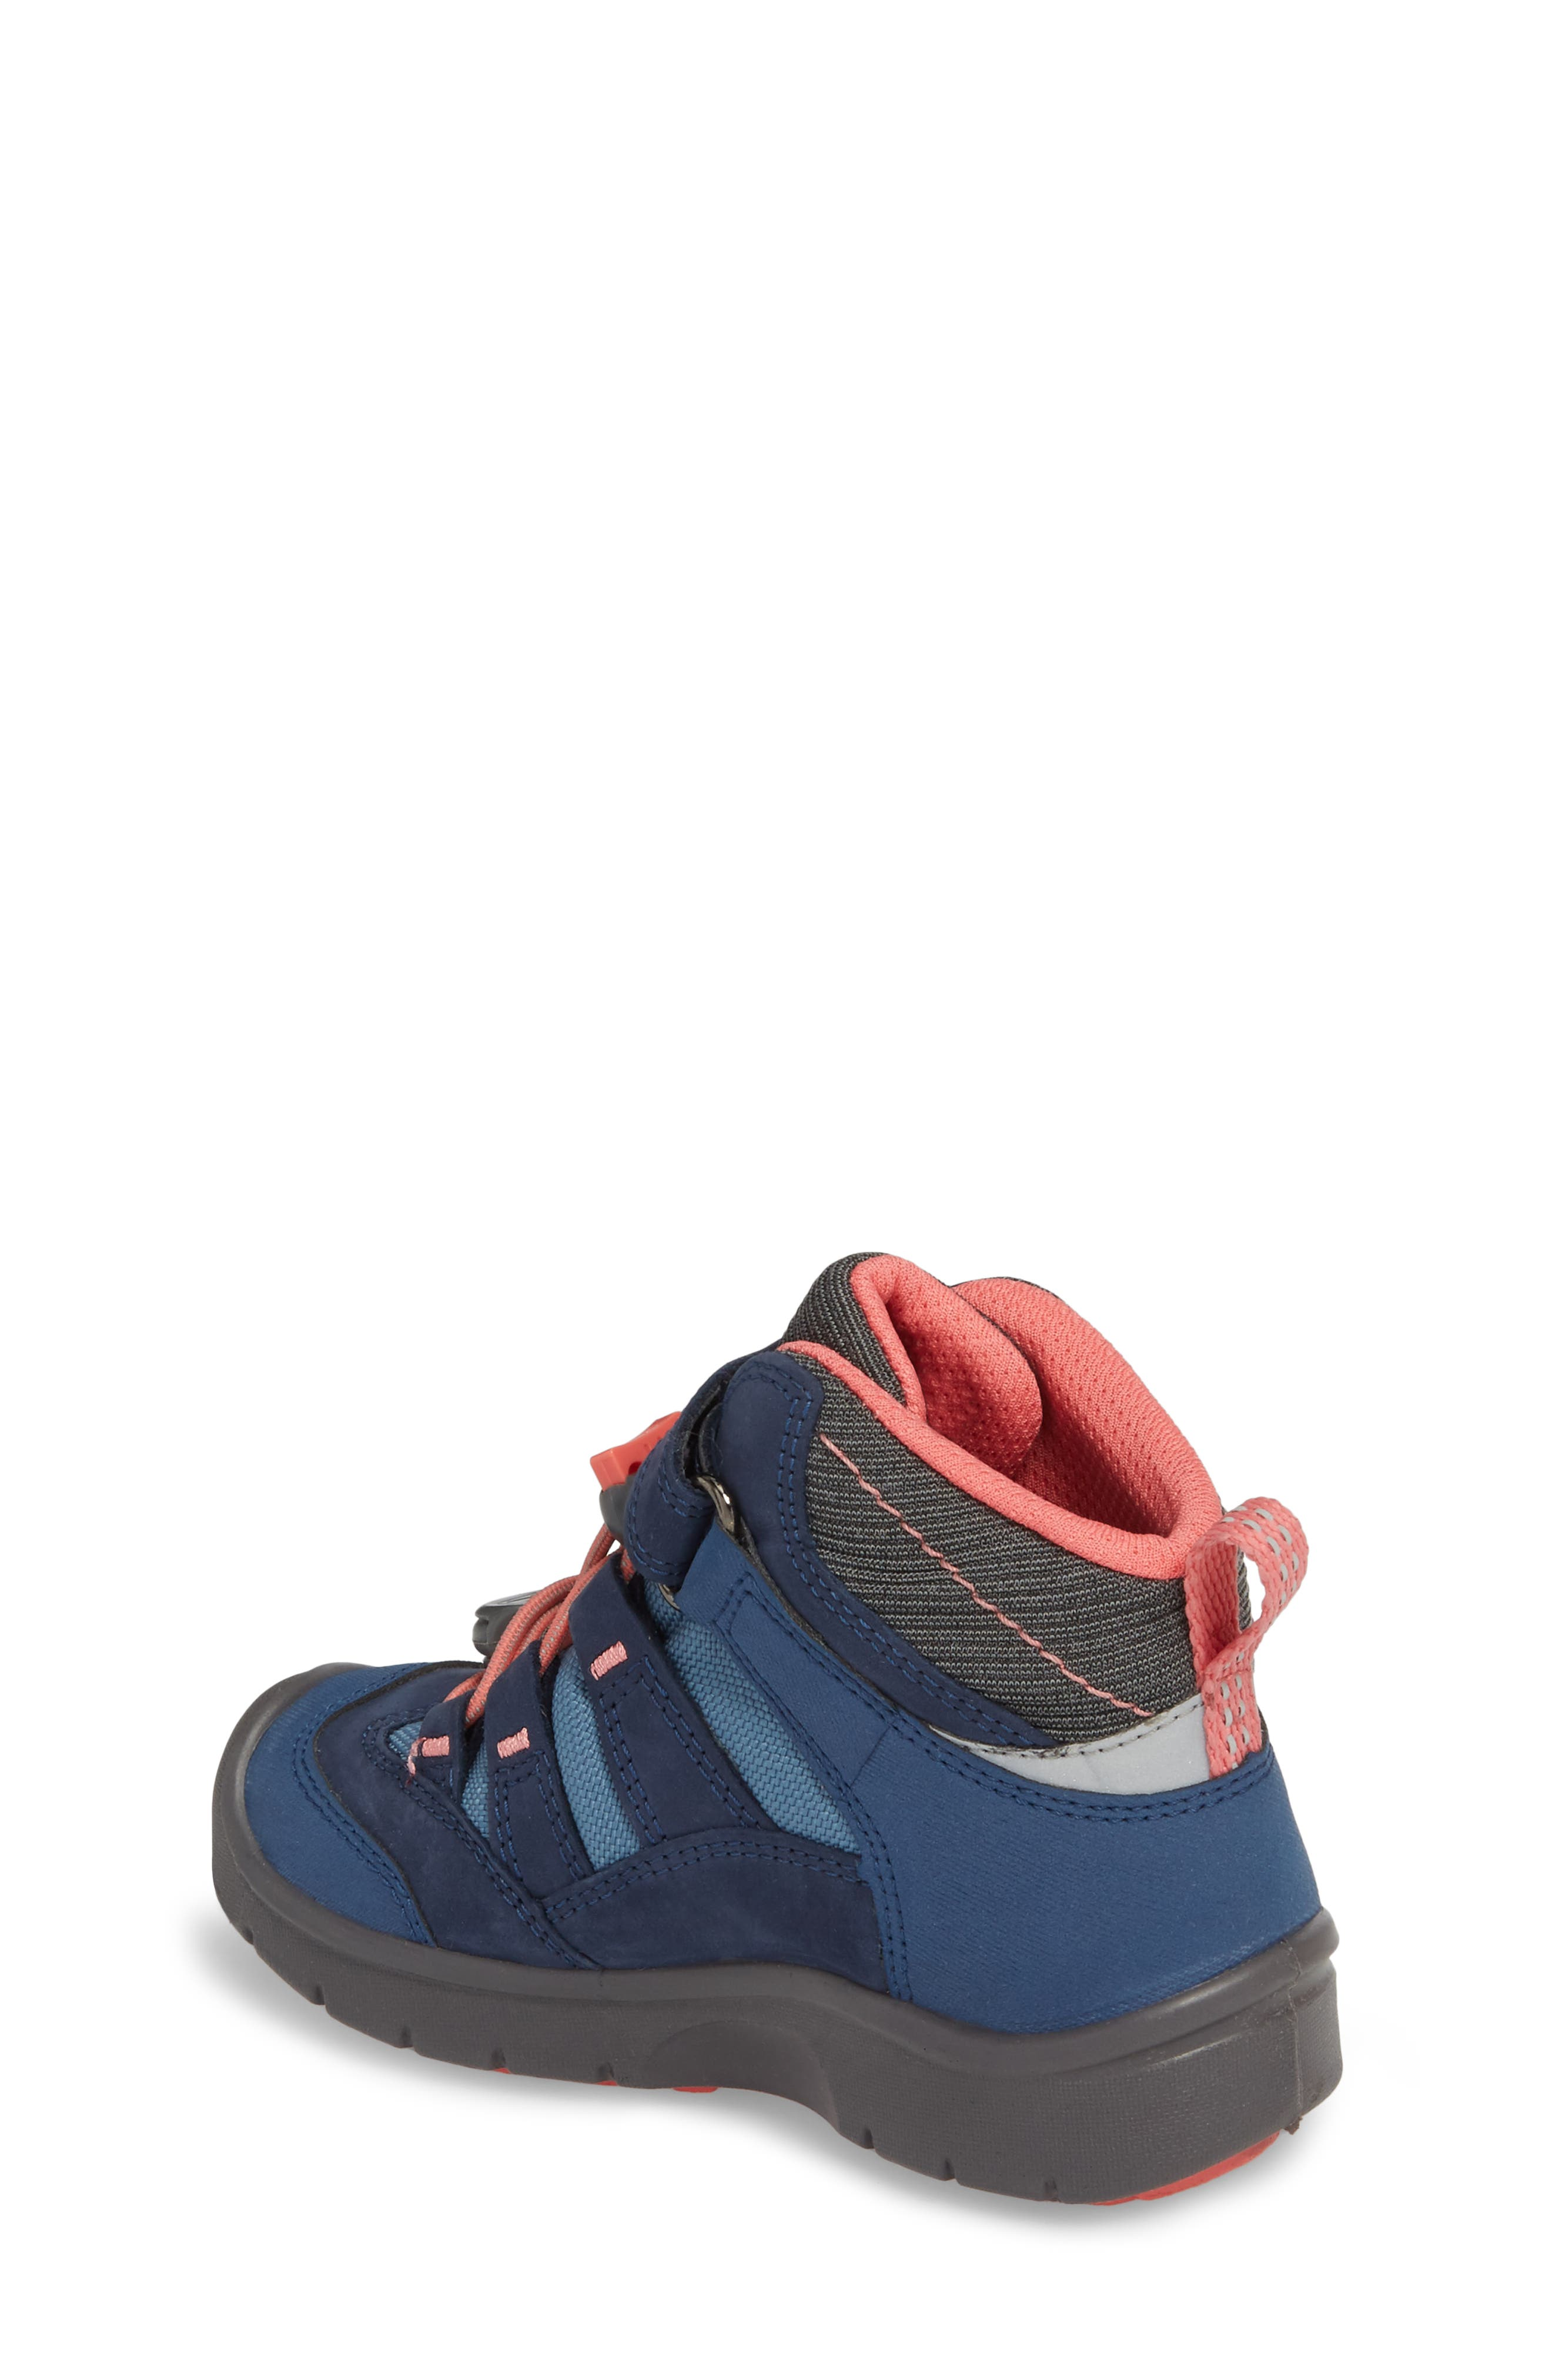 Hikeport Strap Waterproof Mid Boot,                             Alternate thumbnail 8, color,